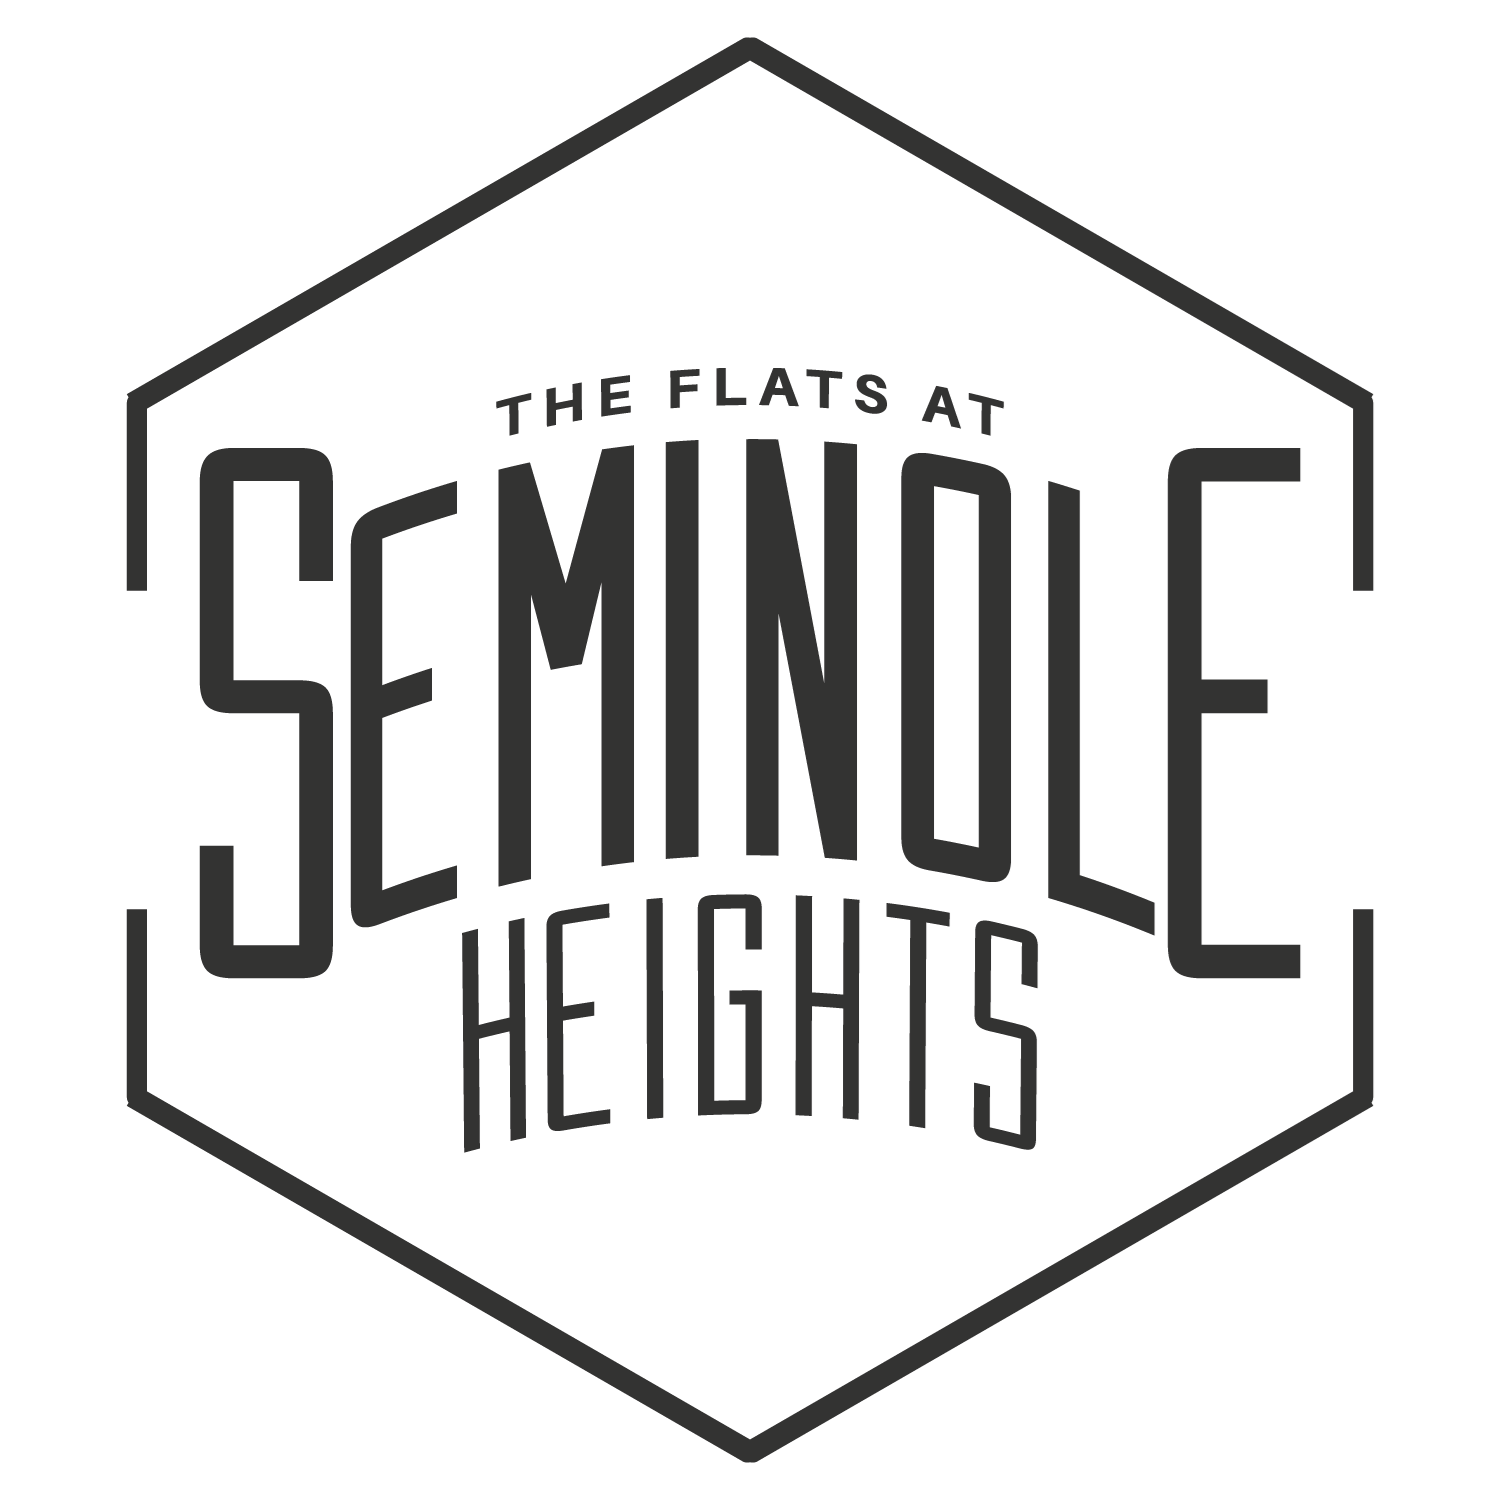 The Flats at Seminole Heights